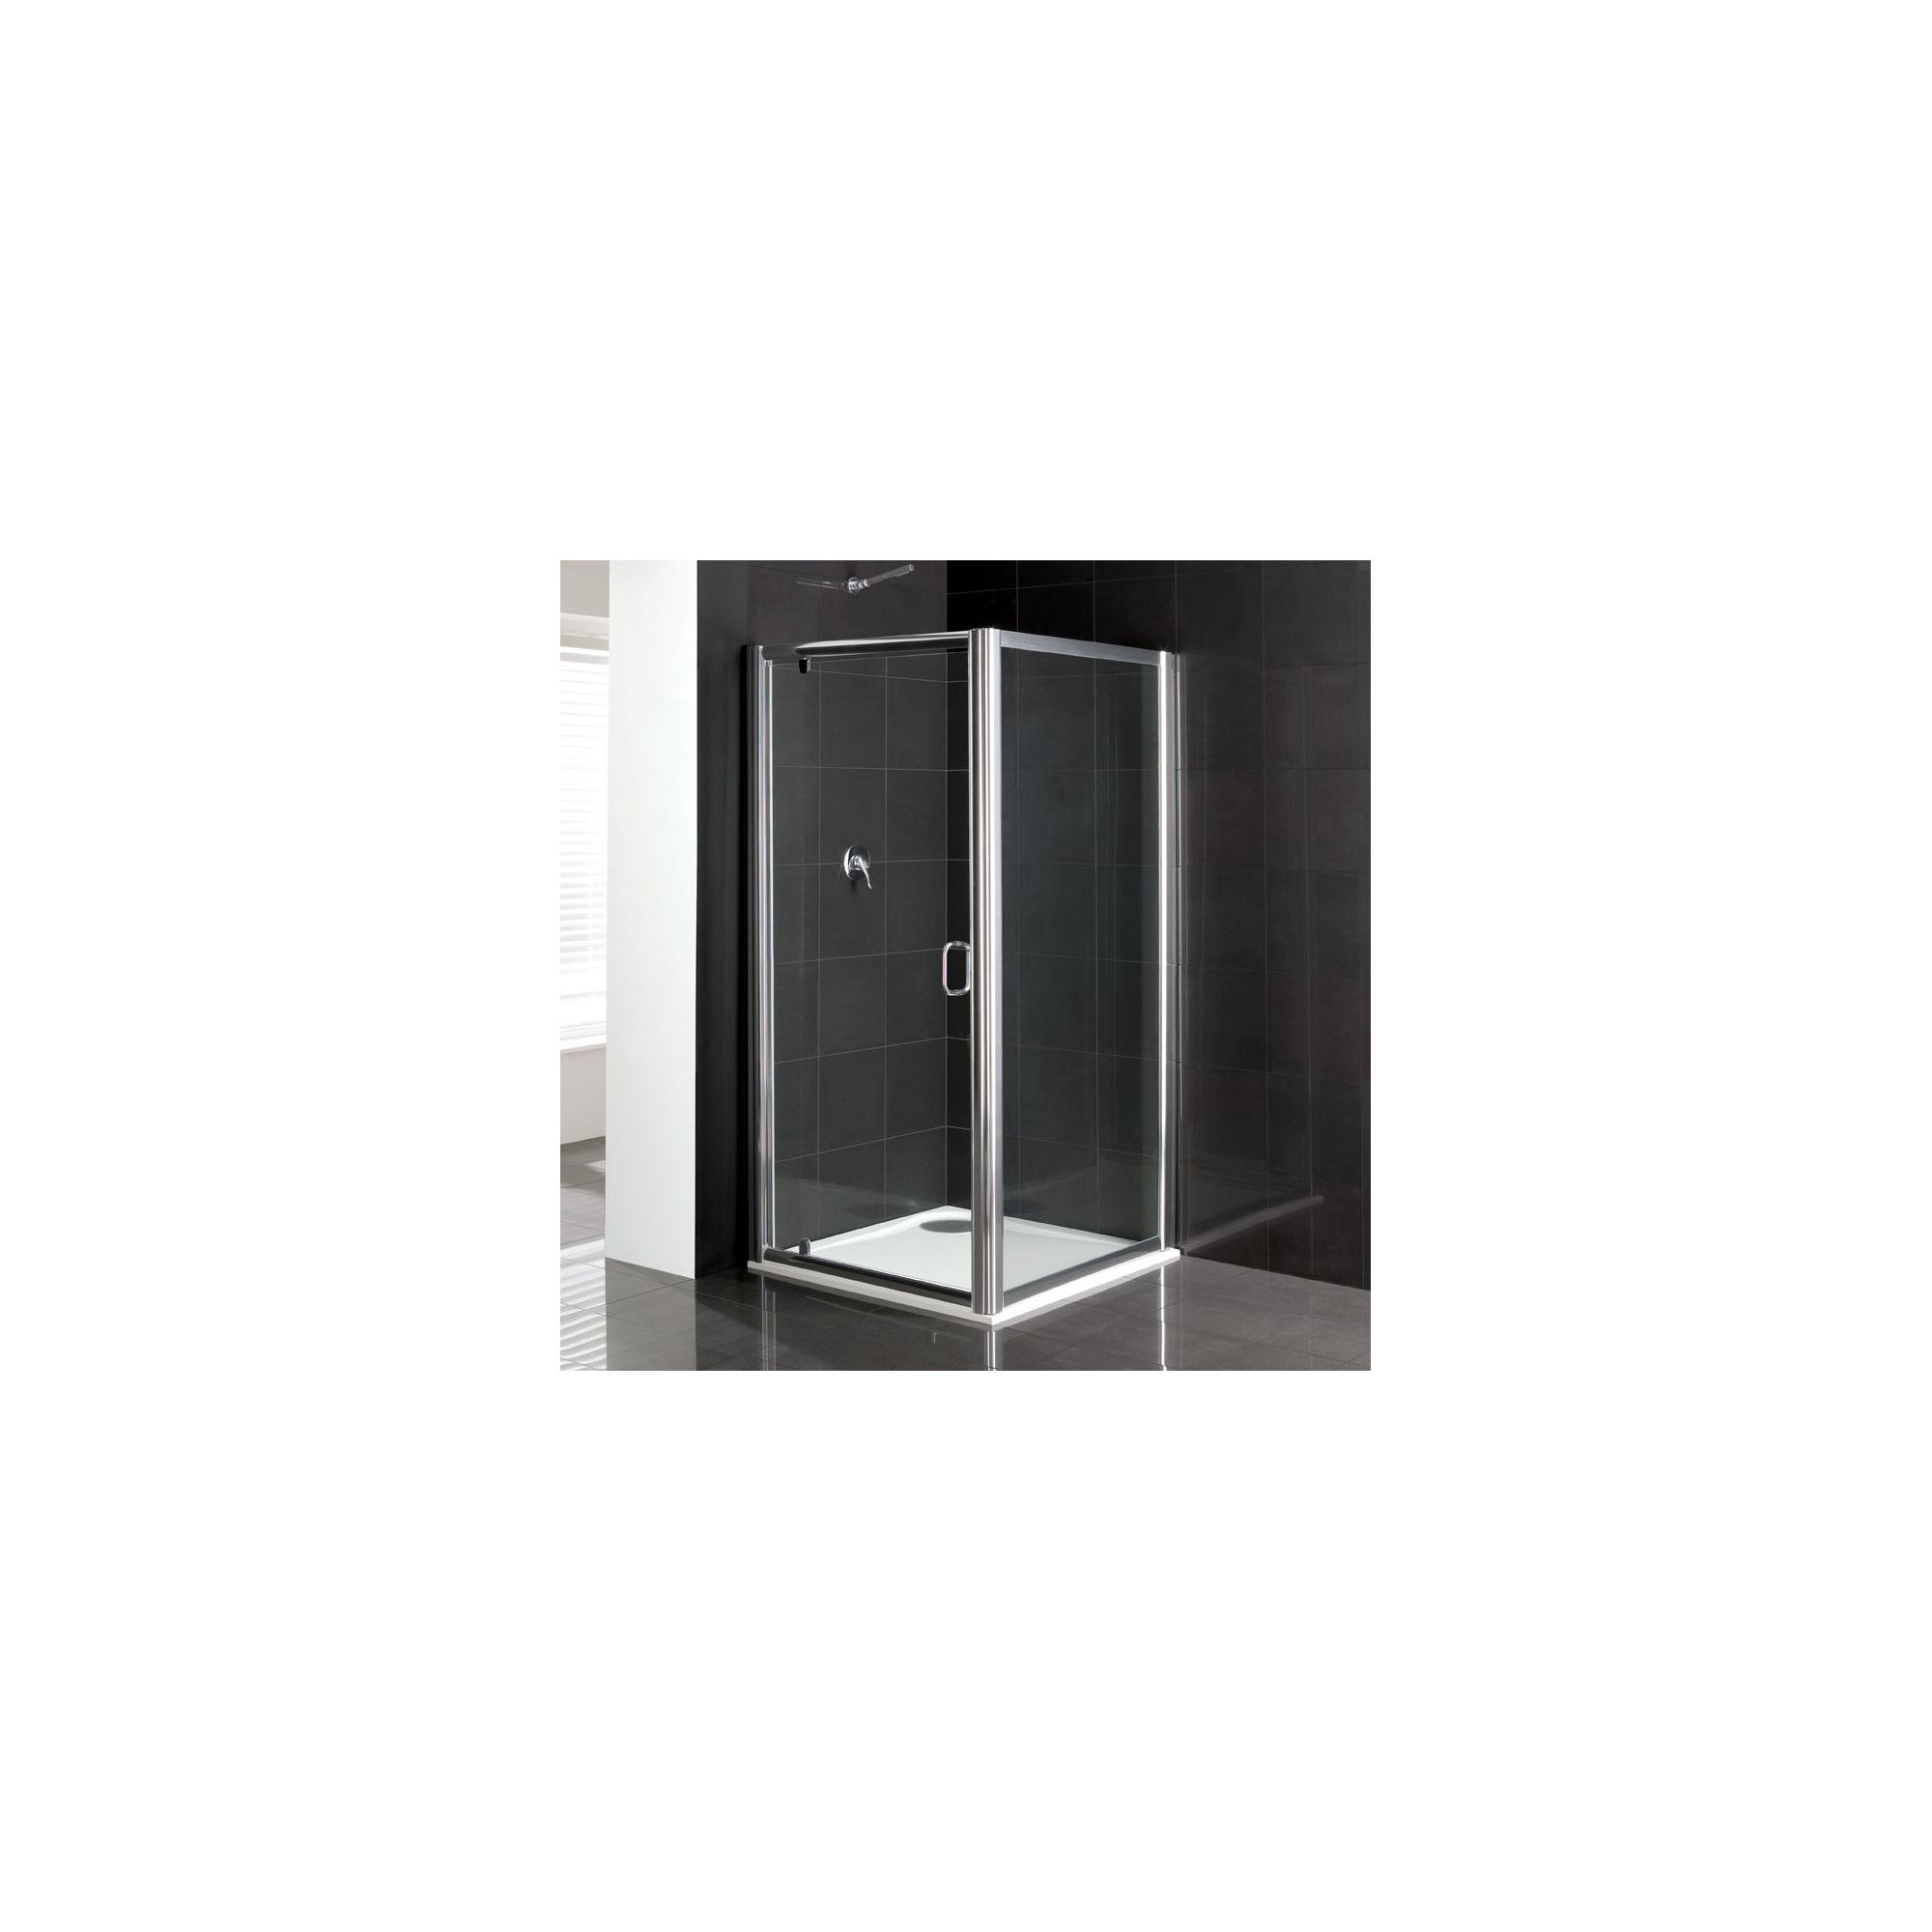 Duchy Elite Silver Pivot Door Shower Enclosure with Towel Rail, 1000mm x 900mm, Standard Tray, 6mm Glass at Tesco Direct